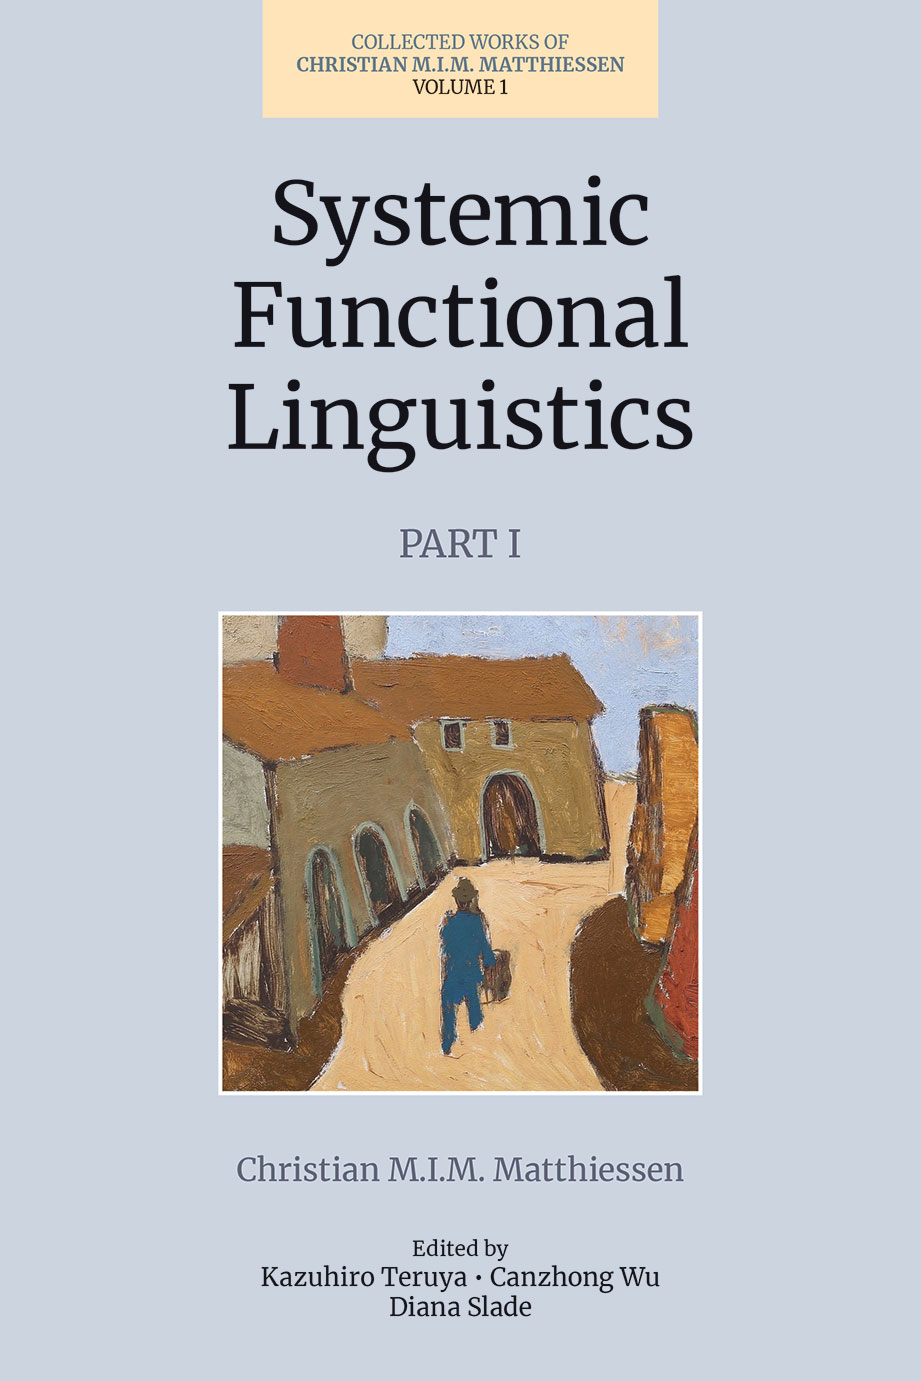 Systemic Functional Linguistics, Part 1